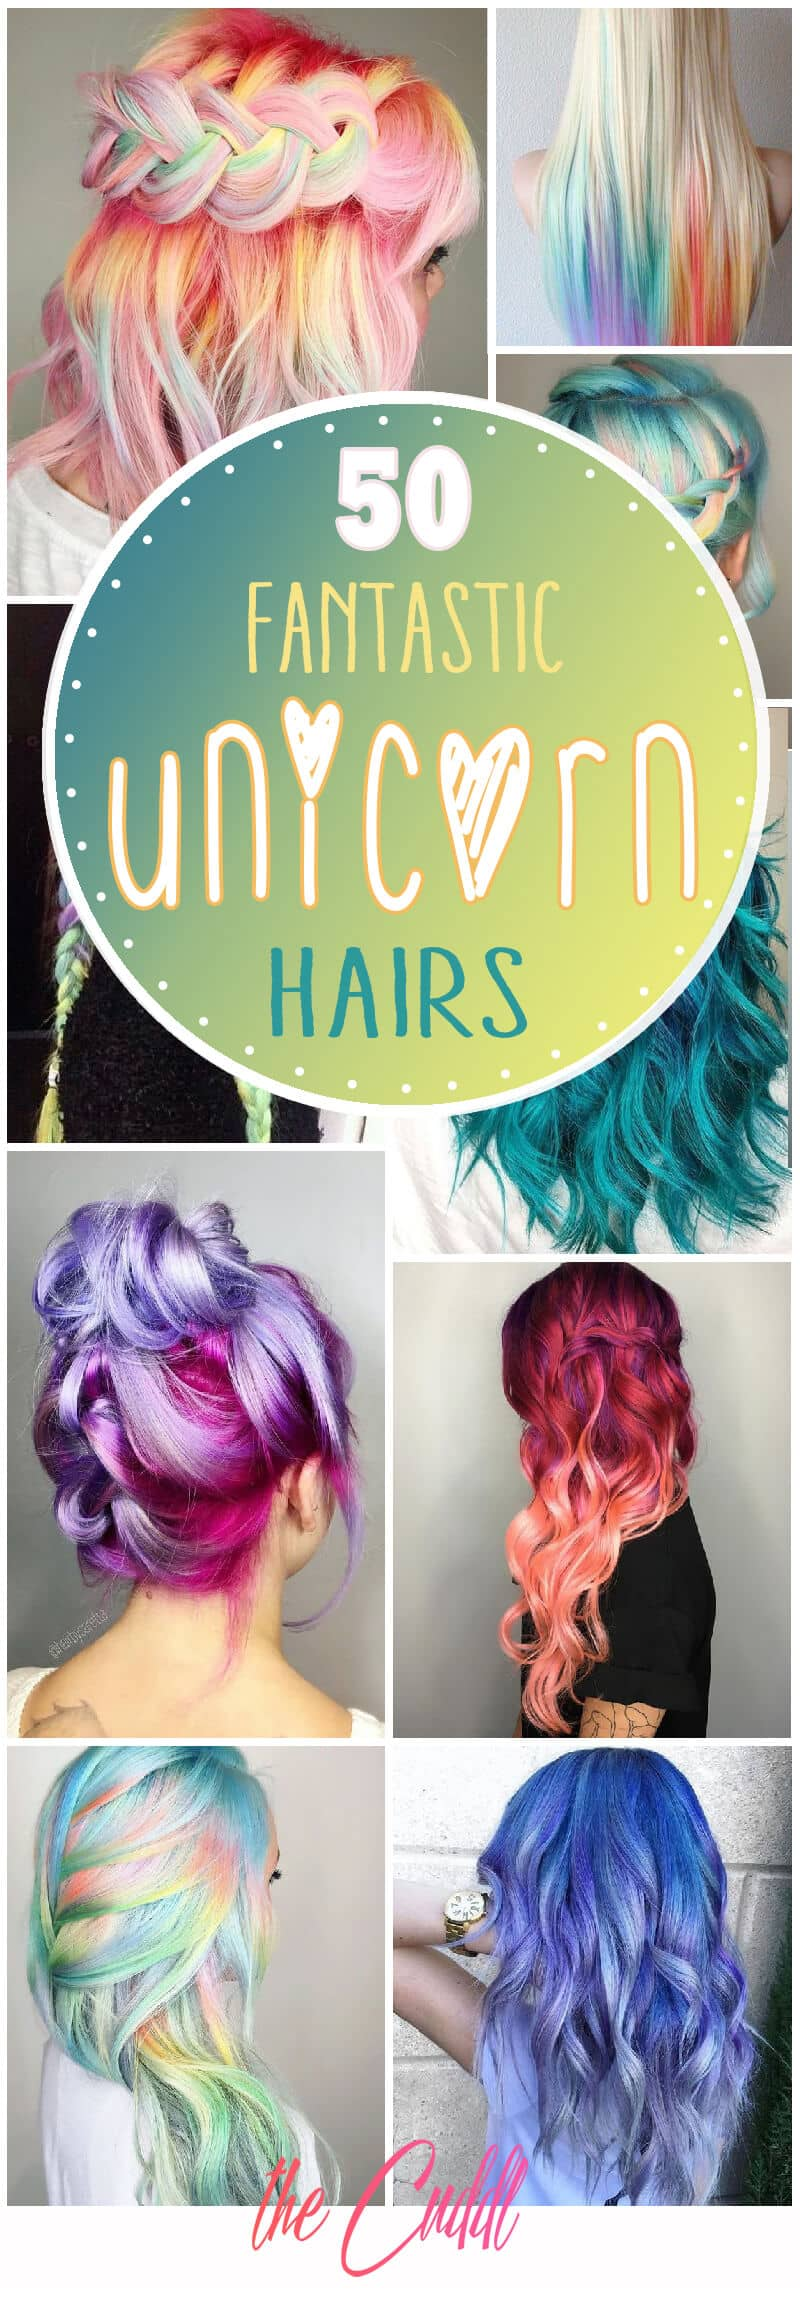 50 Stunningly Styled Unicorn Hair Color Ideas To Stand Out From The Crowd